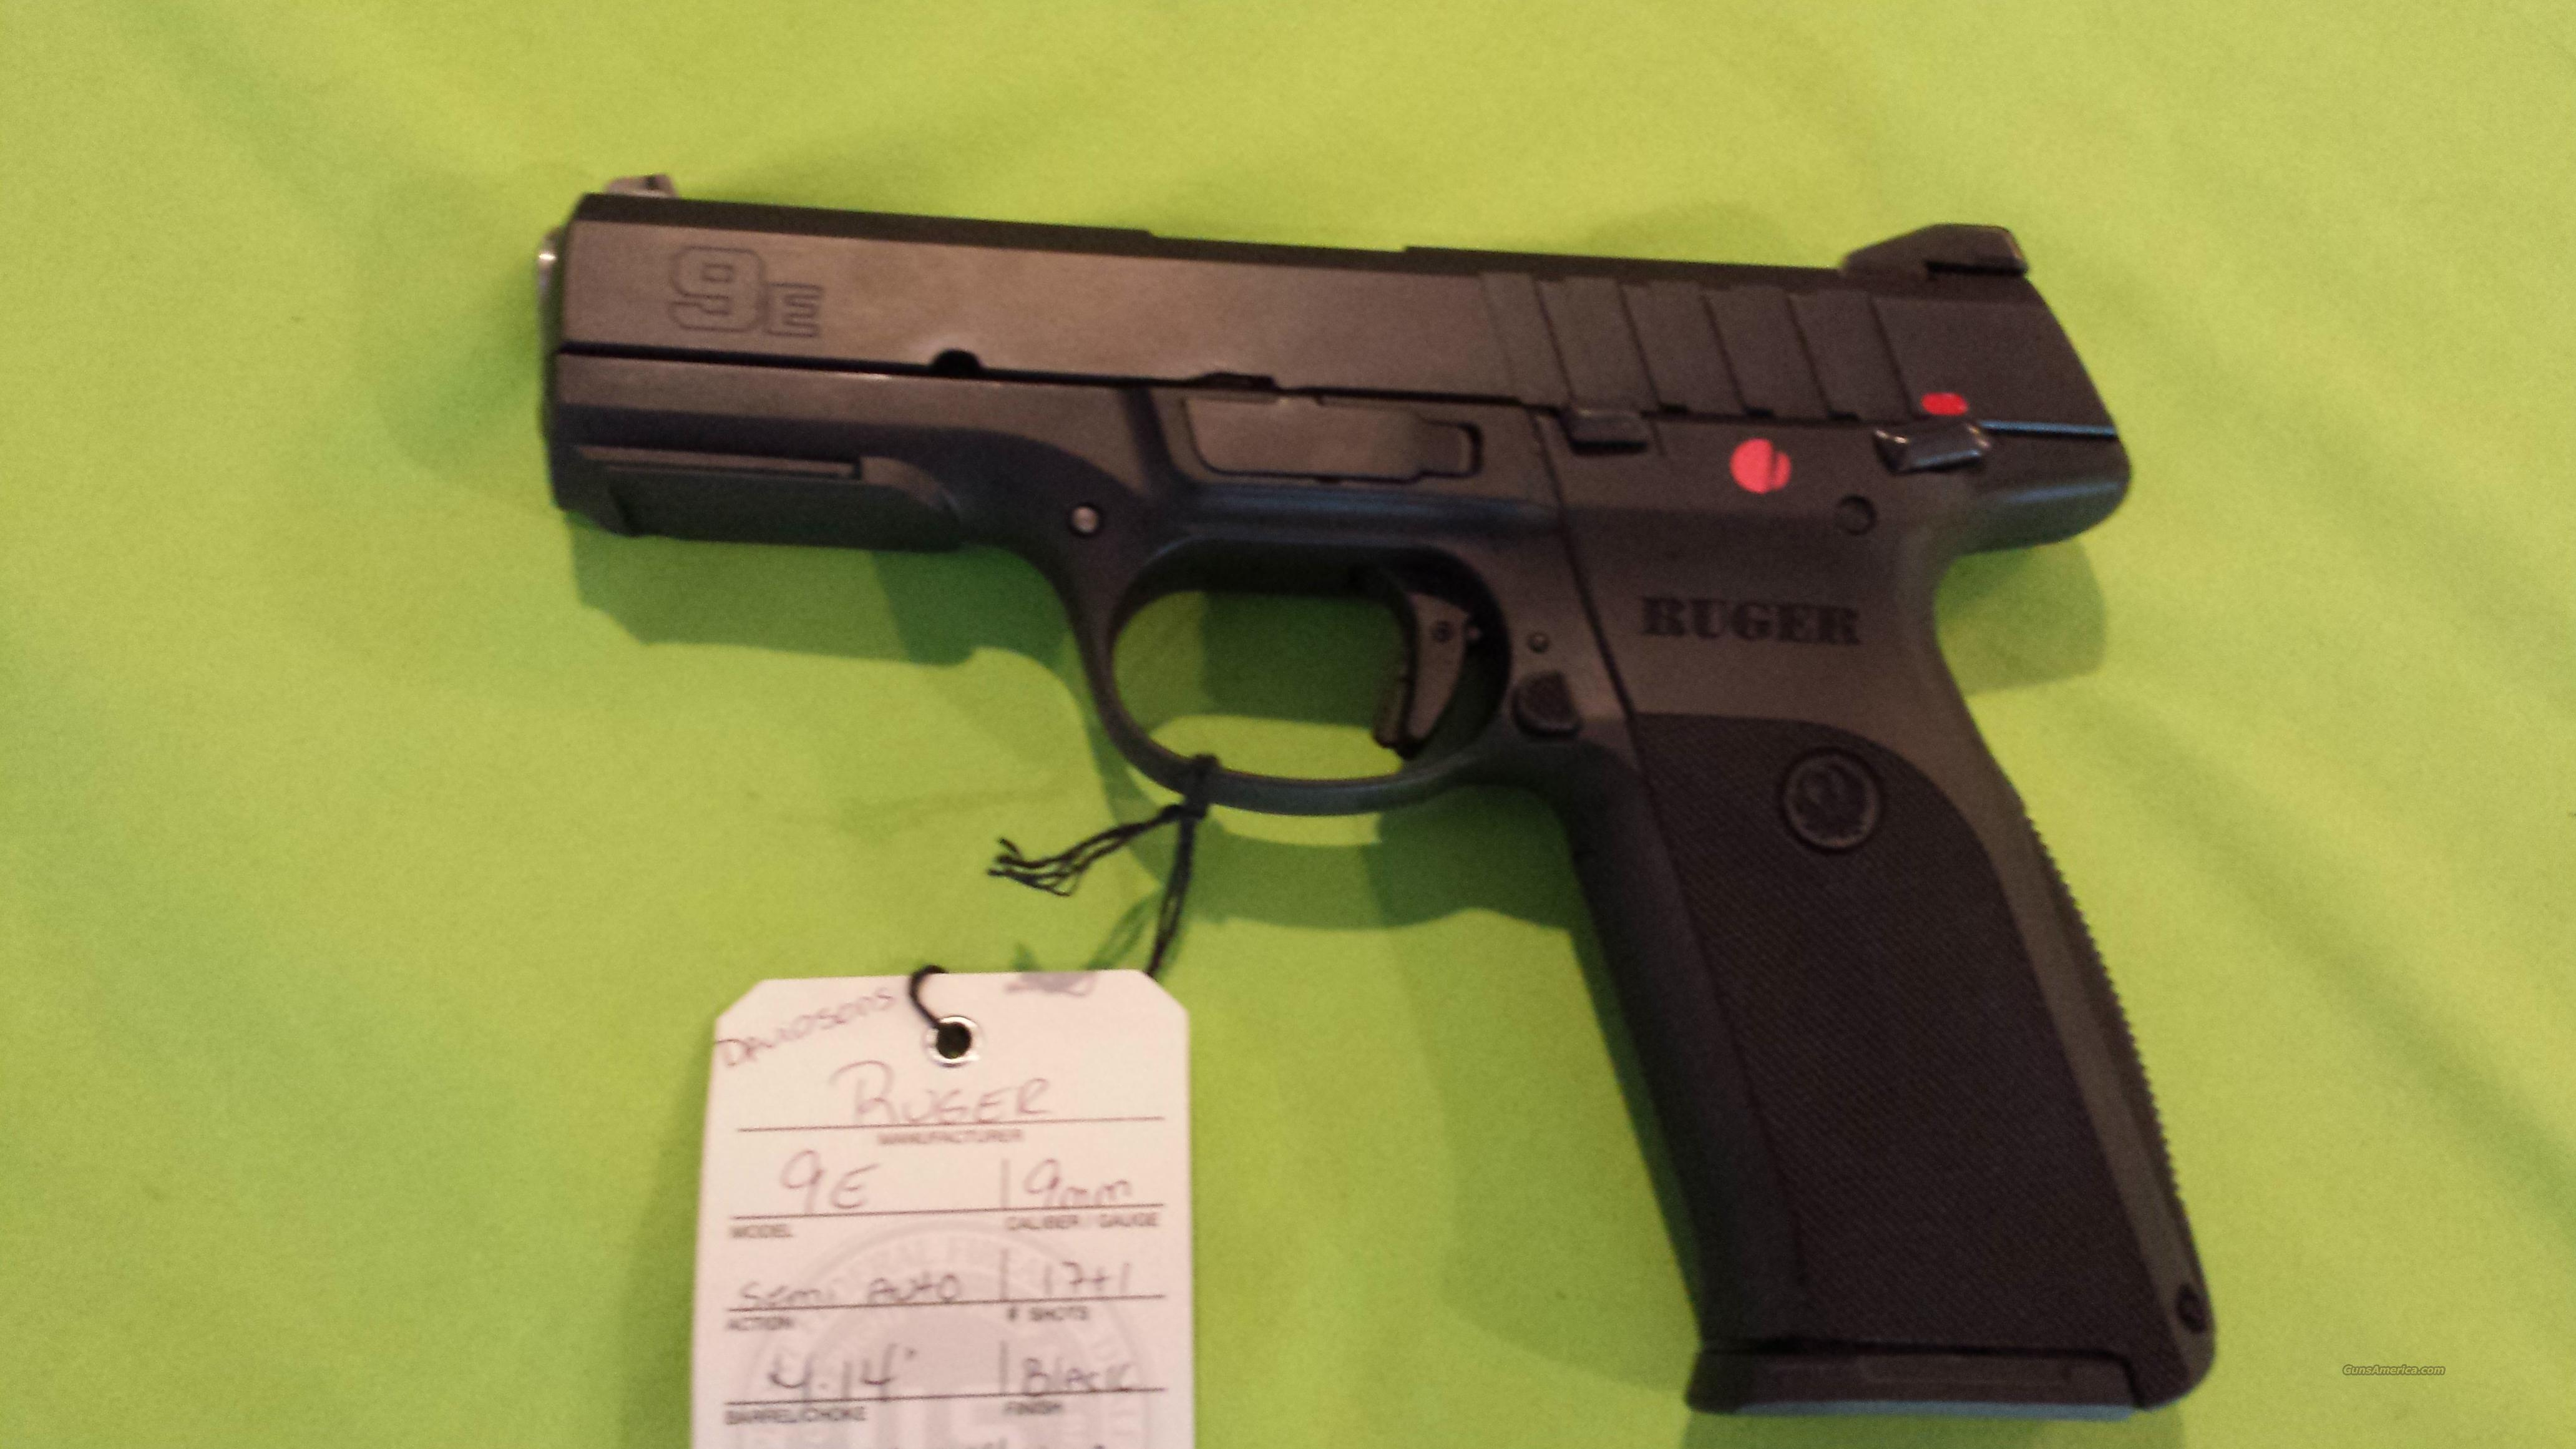 NEW...RUGER 9E 9MM 9 MM BLACK 17RD 1-MAG 3340  Guns > Pistols > Ruger Semi-Auto Pistols > SR Family > SR40